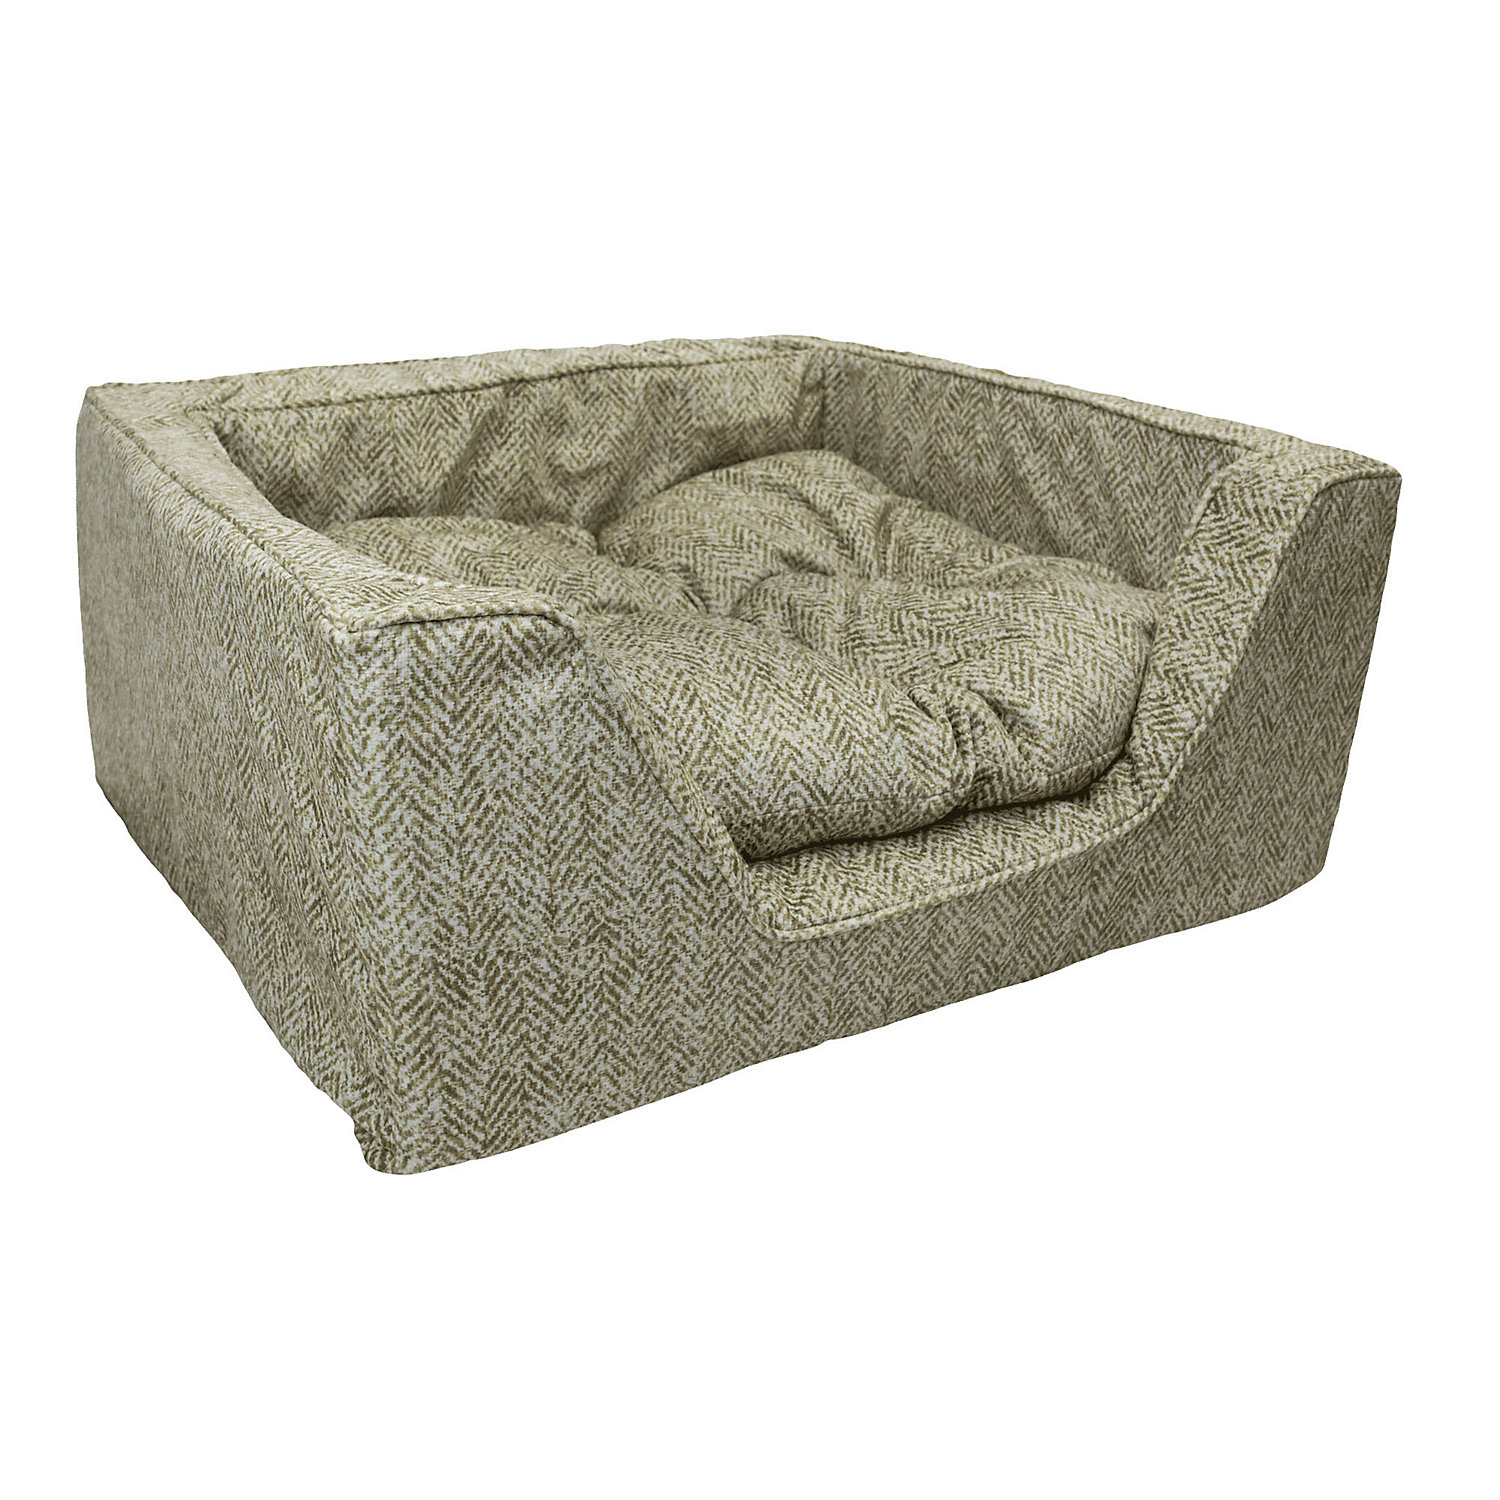 Snoozer Premium Micro Suede Square Palmer Citron Dog Bed 27 L X 23 W Large